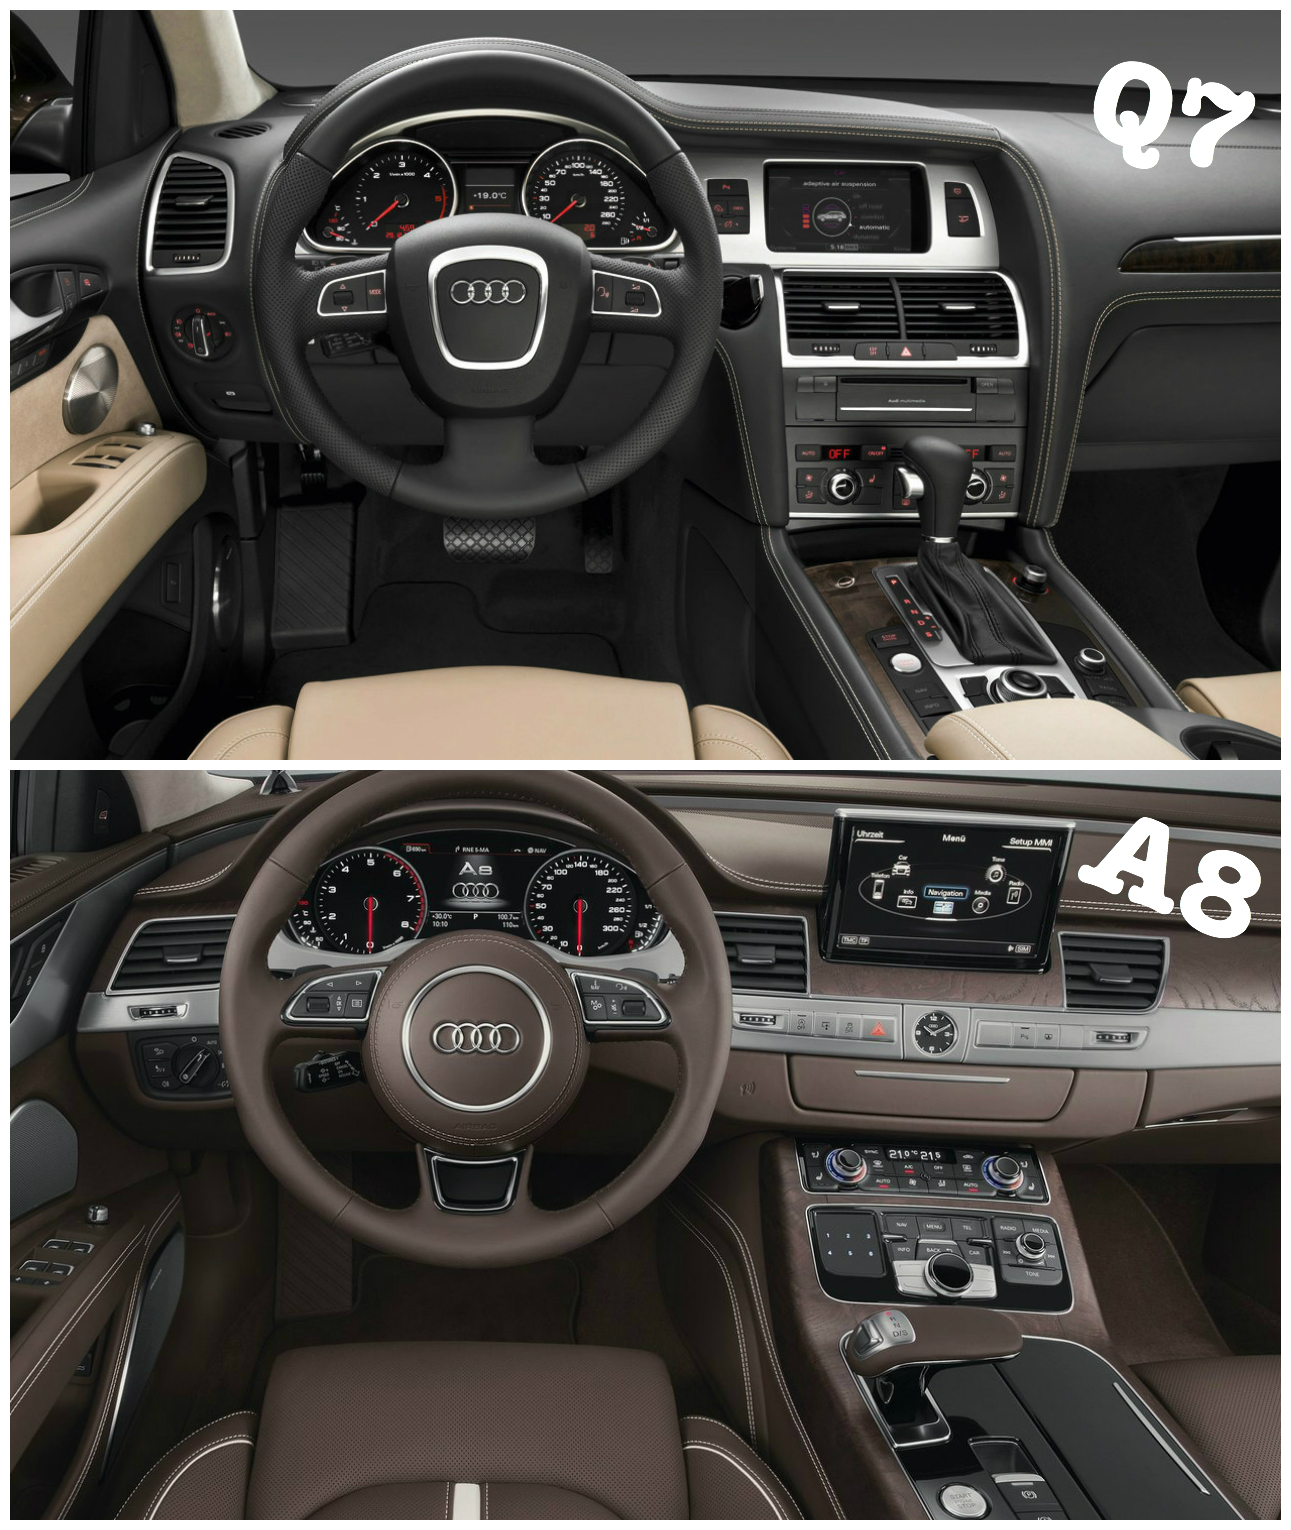 2016 Audi Q7 Interior Revealed In Latest Spyshots: New MMI